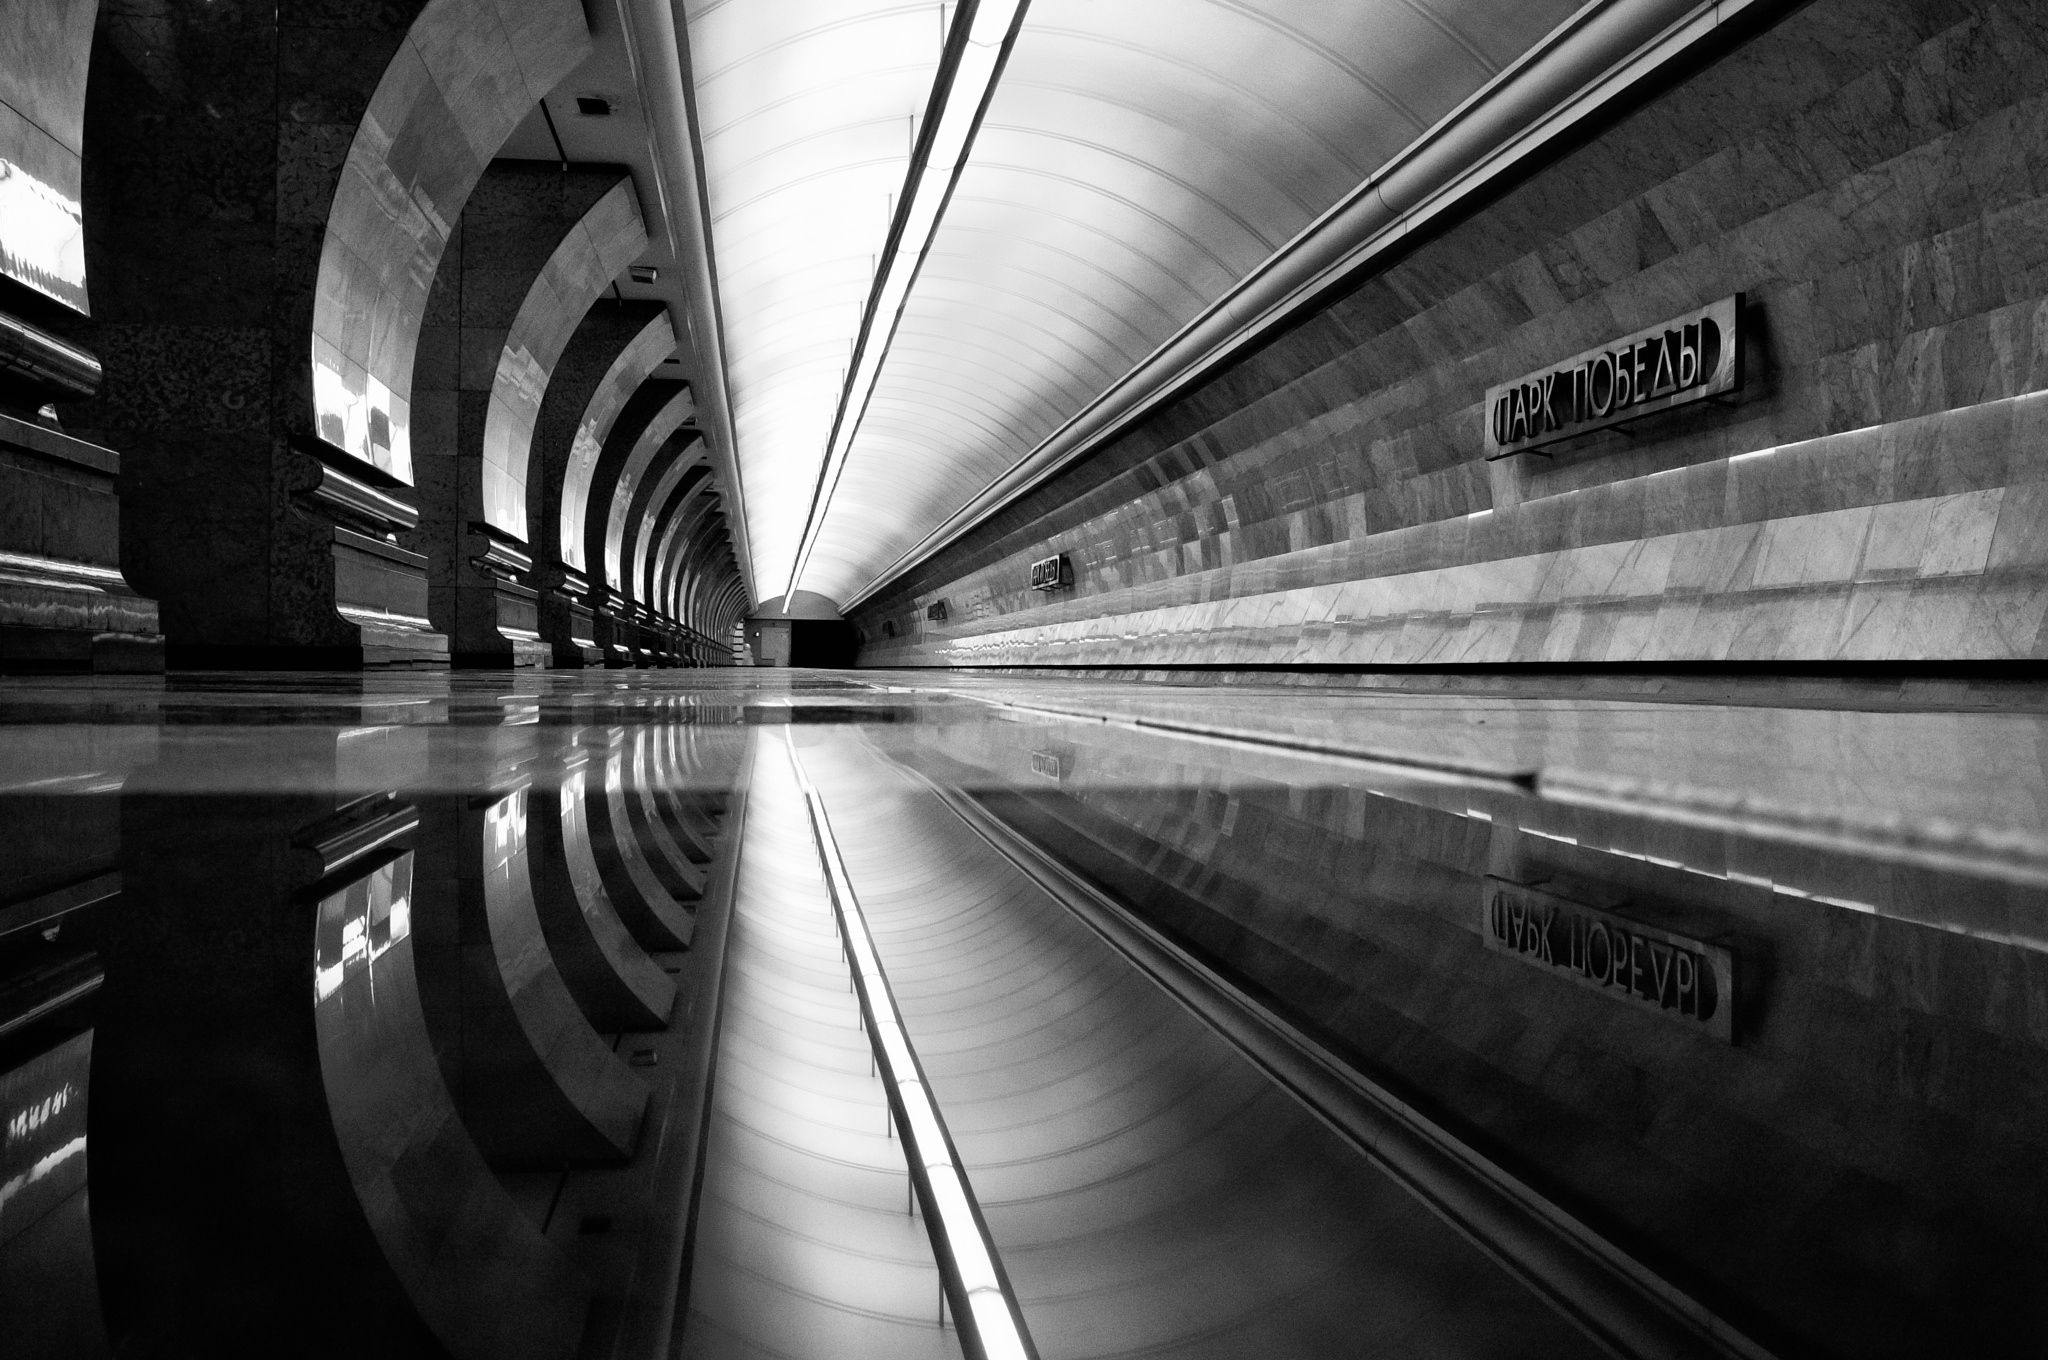 Park Pobedy Station, Study 1 by Ivan Makarov on 500px